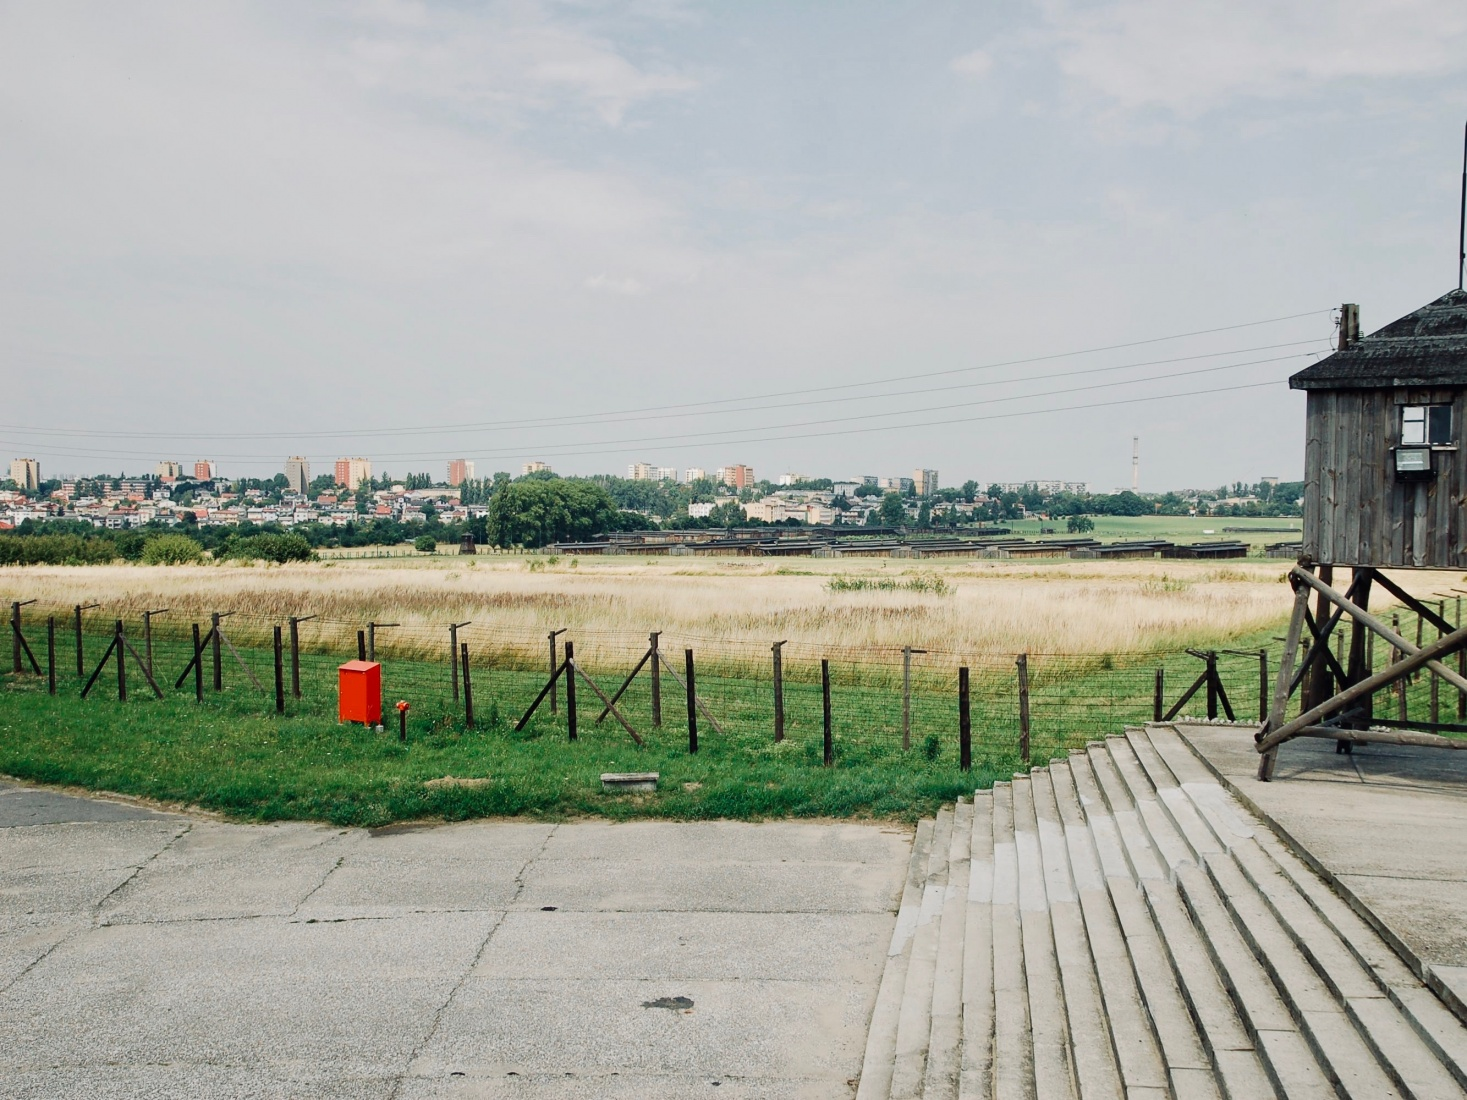 The outskirts of the city of Lublin, Poland, distantly visible from inside the Majdanek concentration camp.